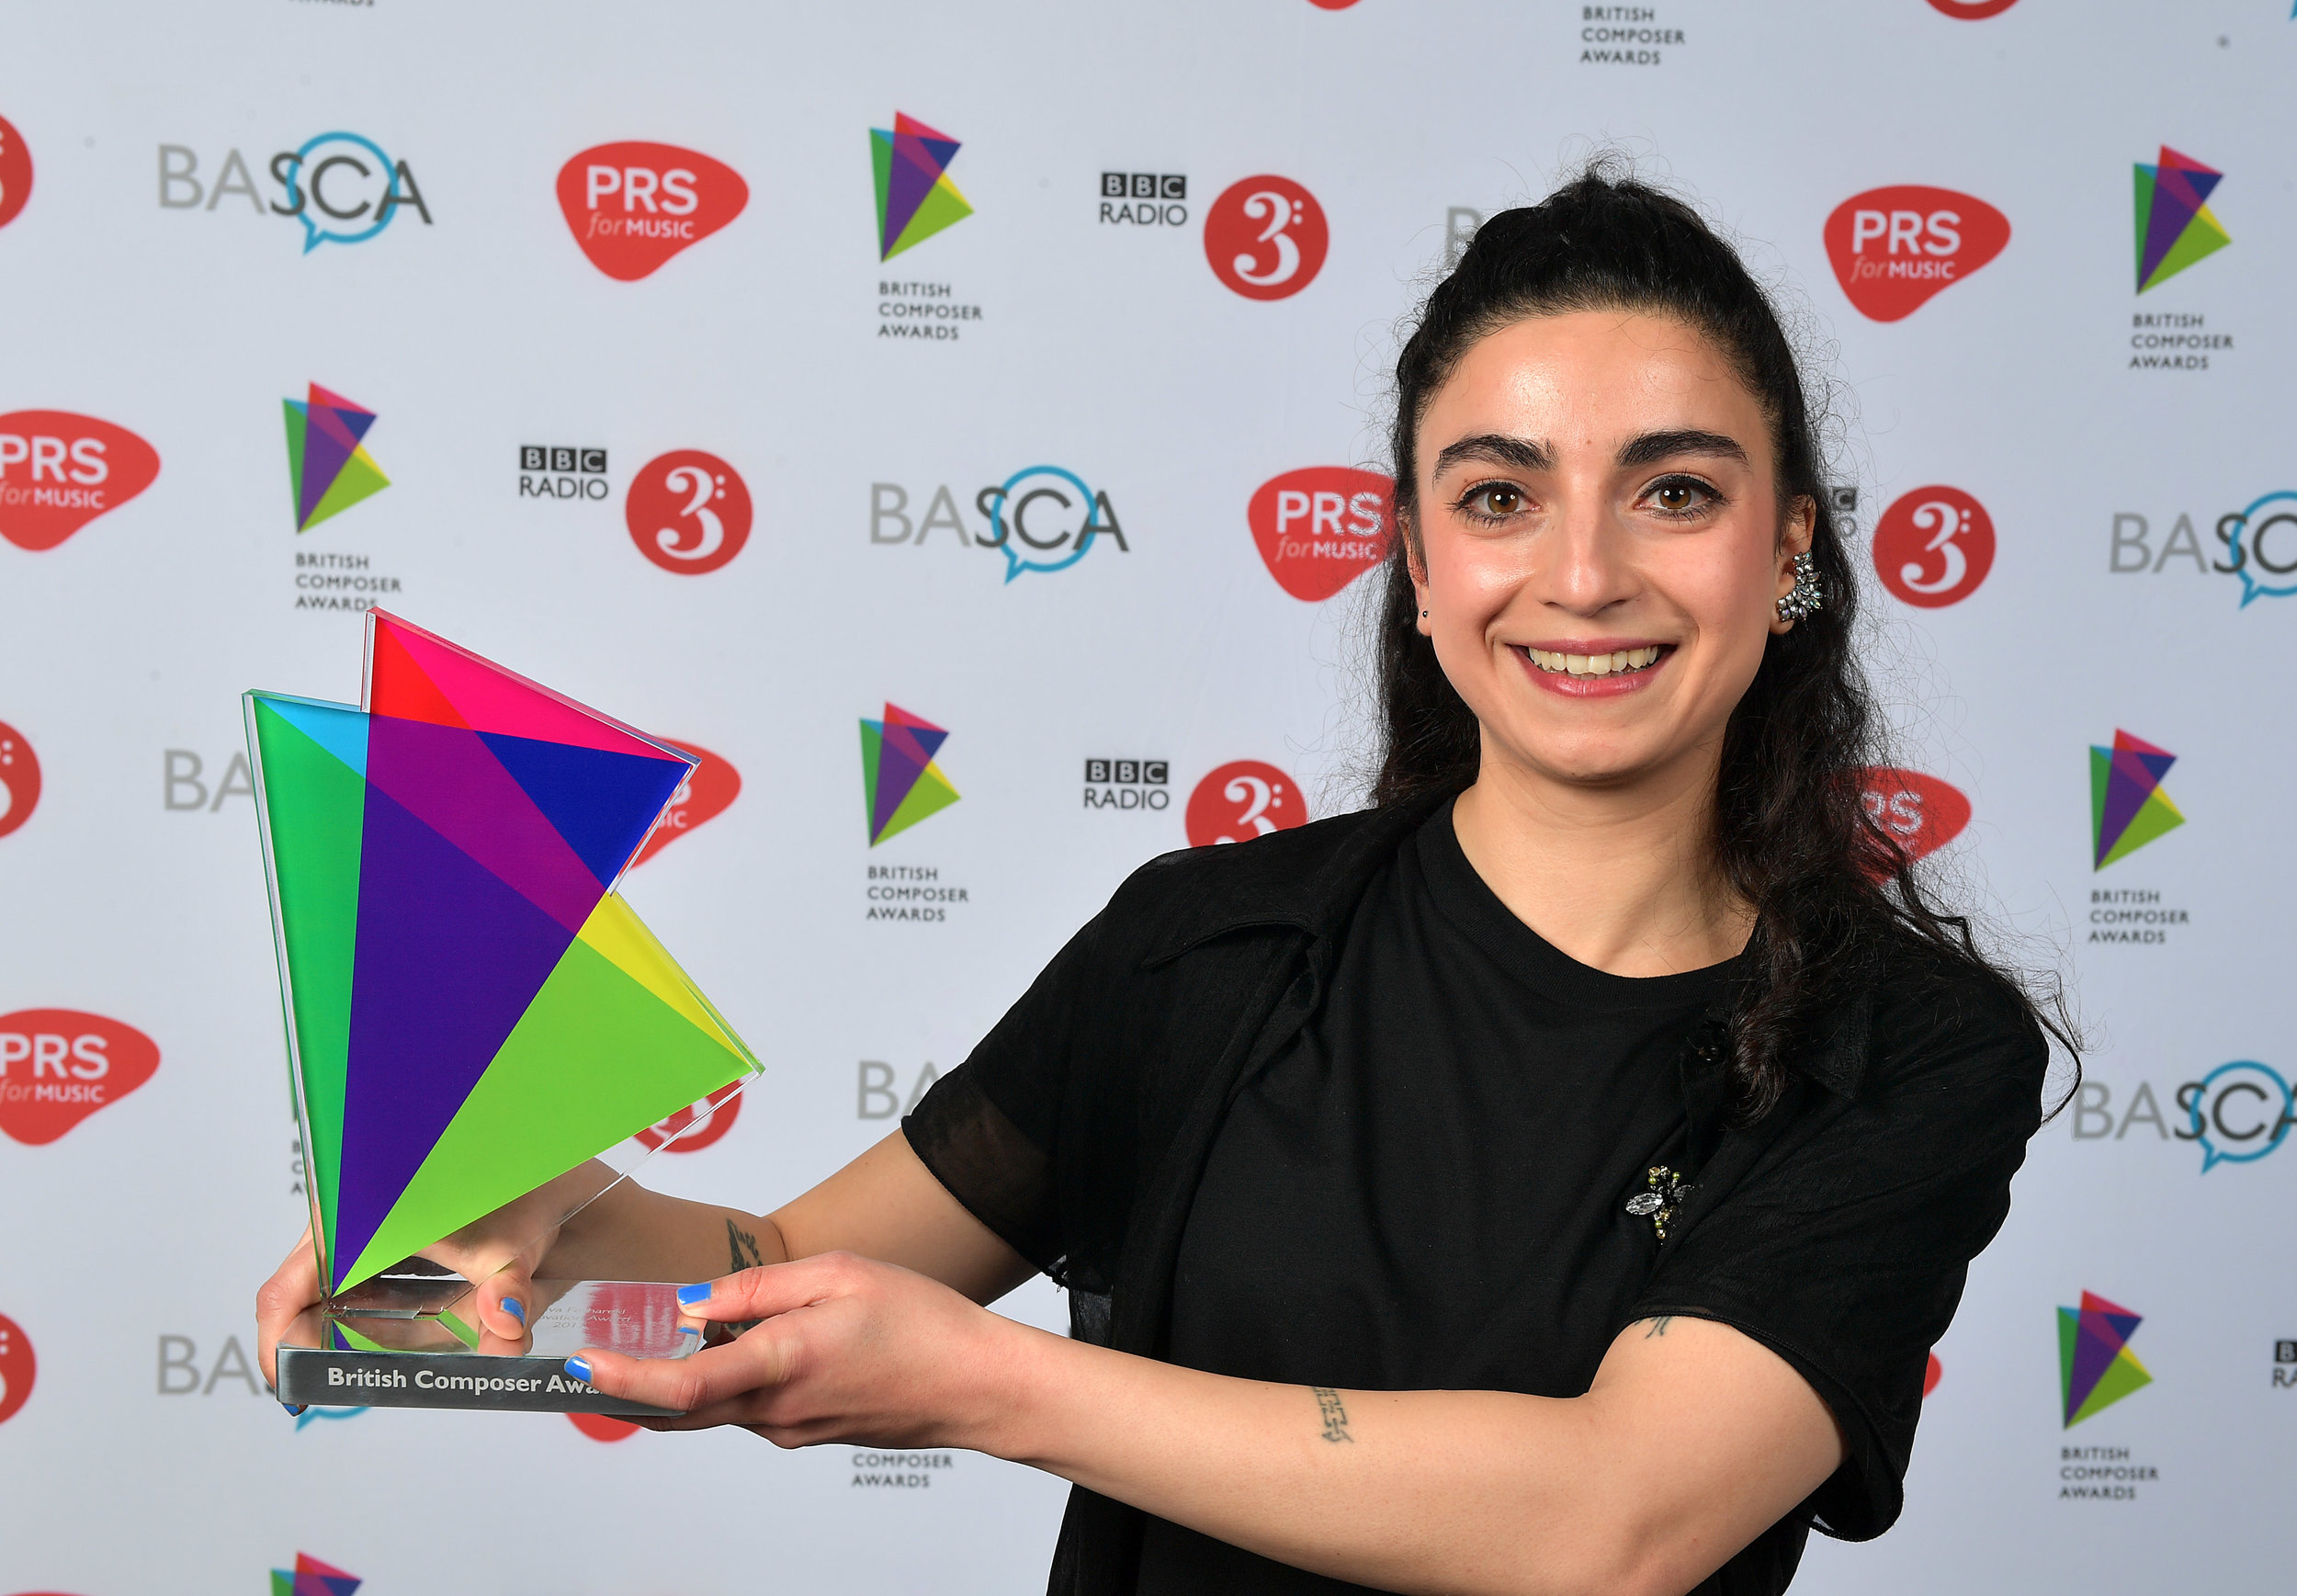 Winner of the 2017 BASCA British Composer Award for Innovation. Photo credit: Mark Allan